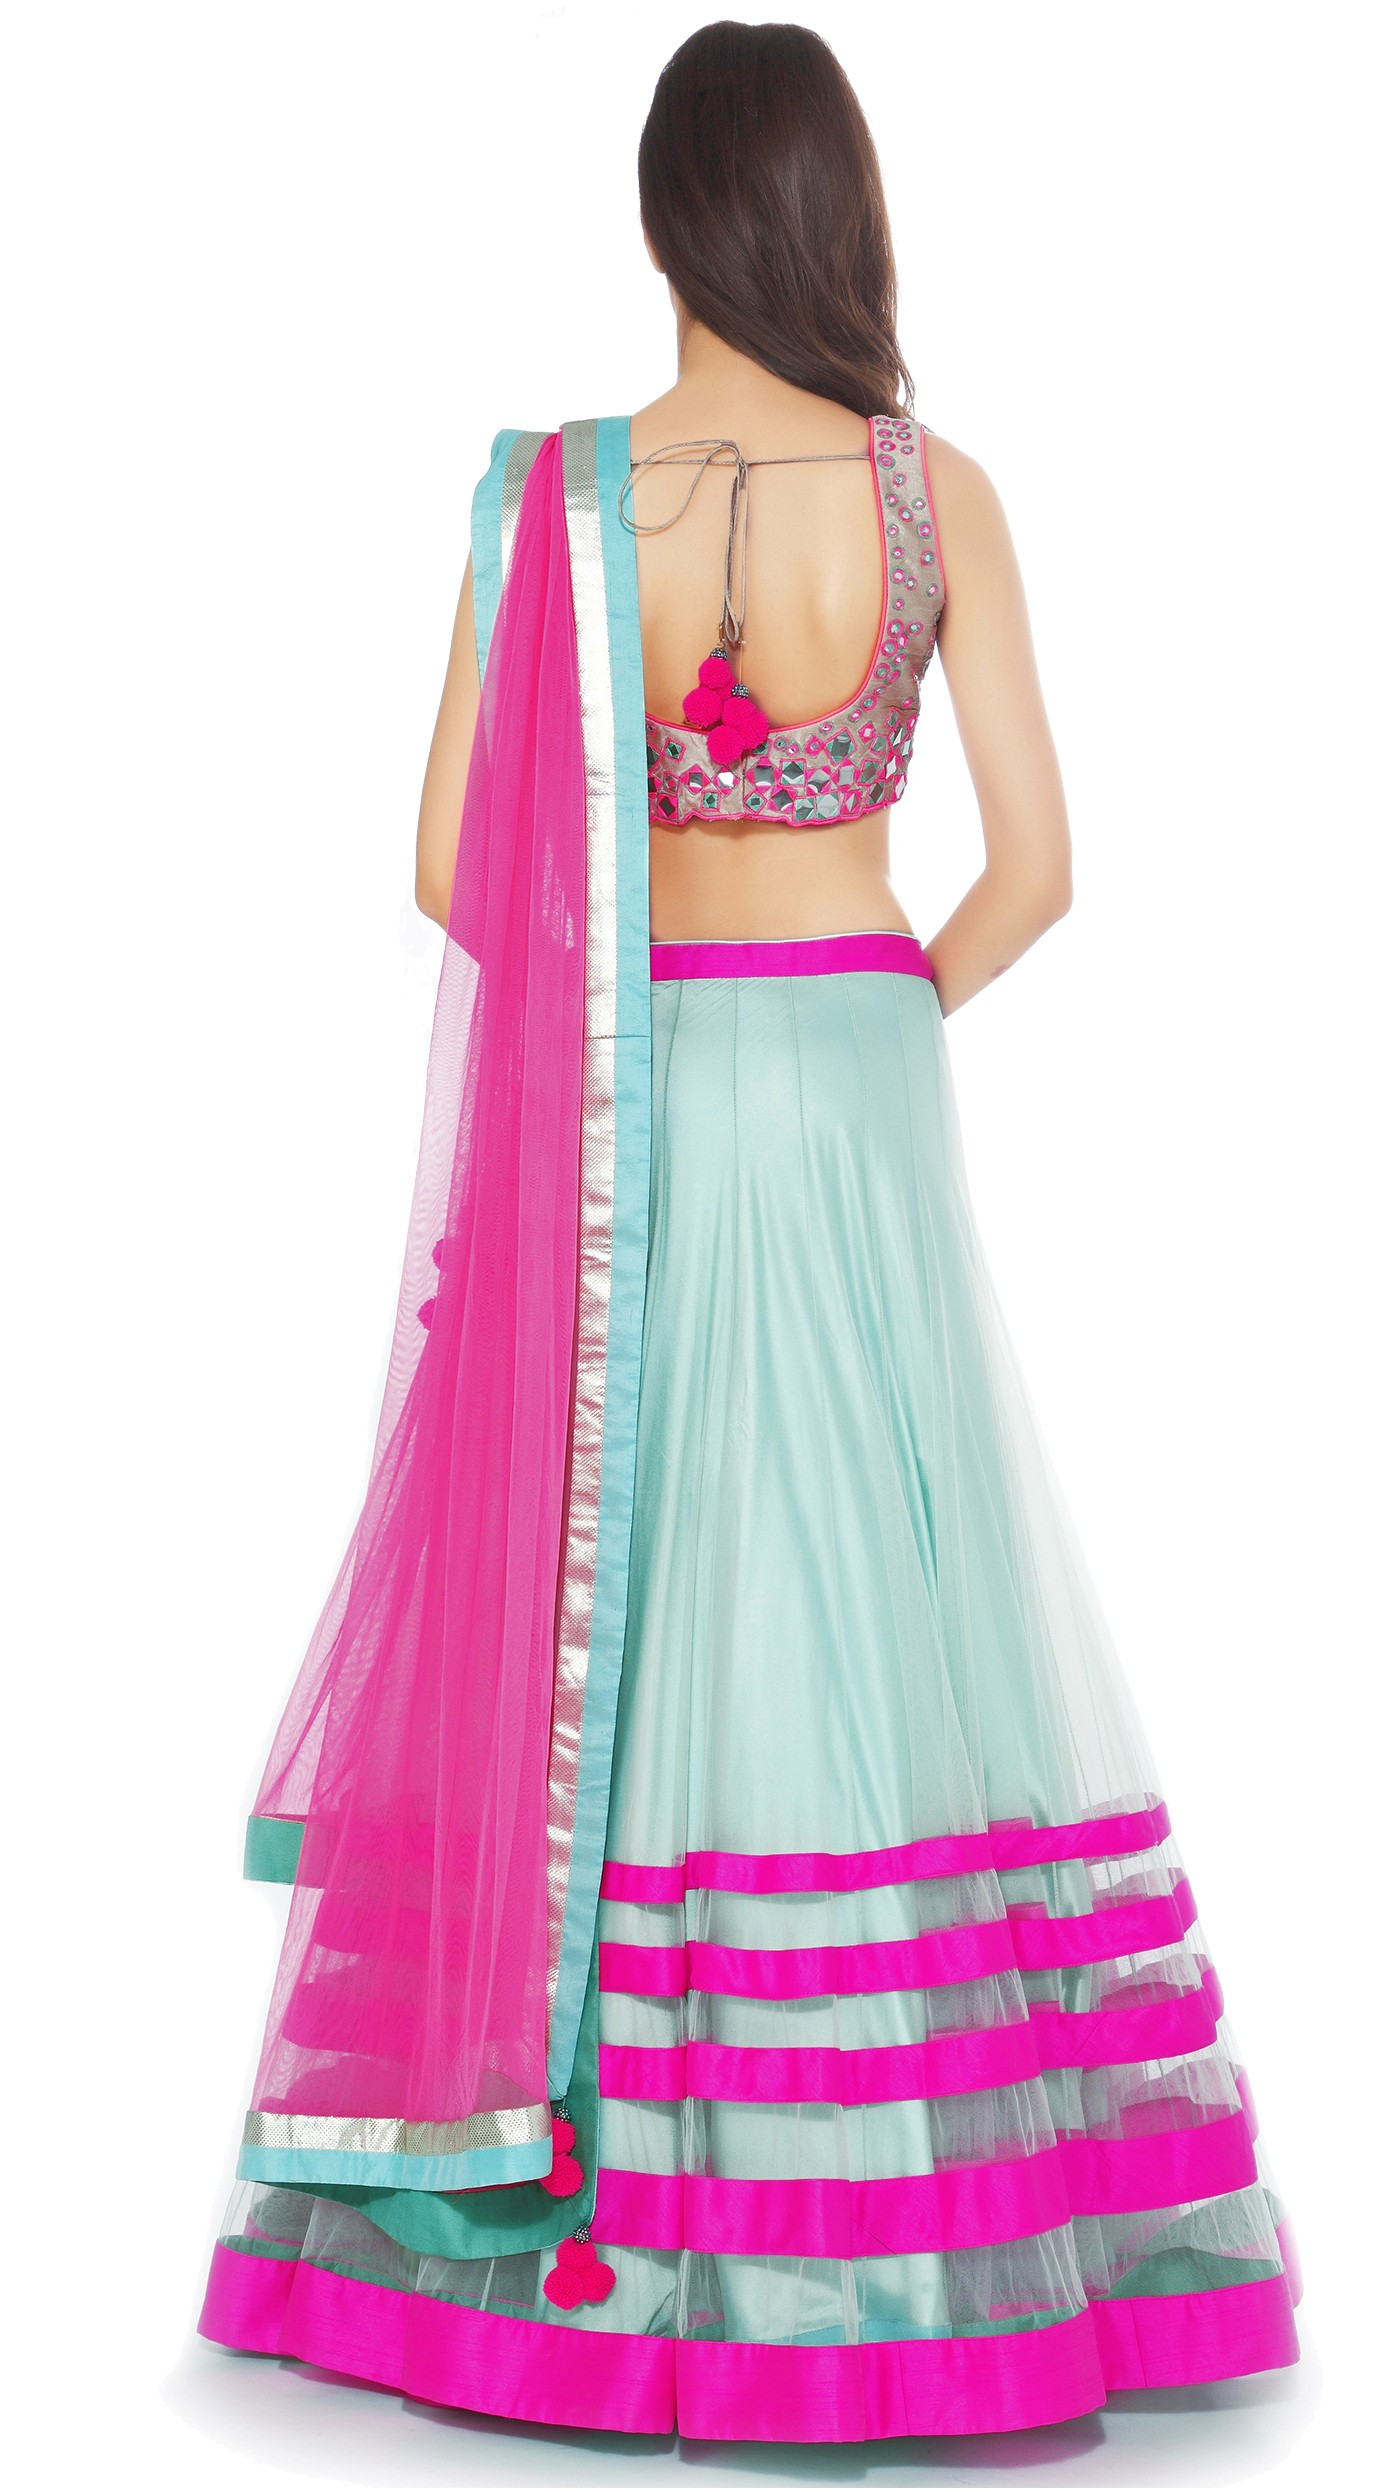 Archana Kochhar S Hot Pink Amp Light Blue Sheer Lengha Set